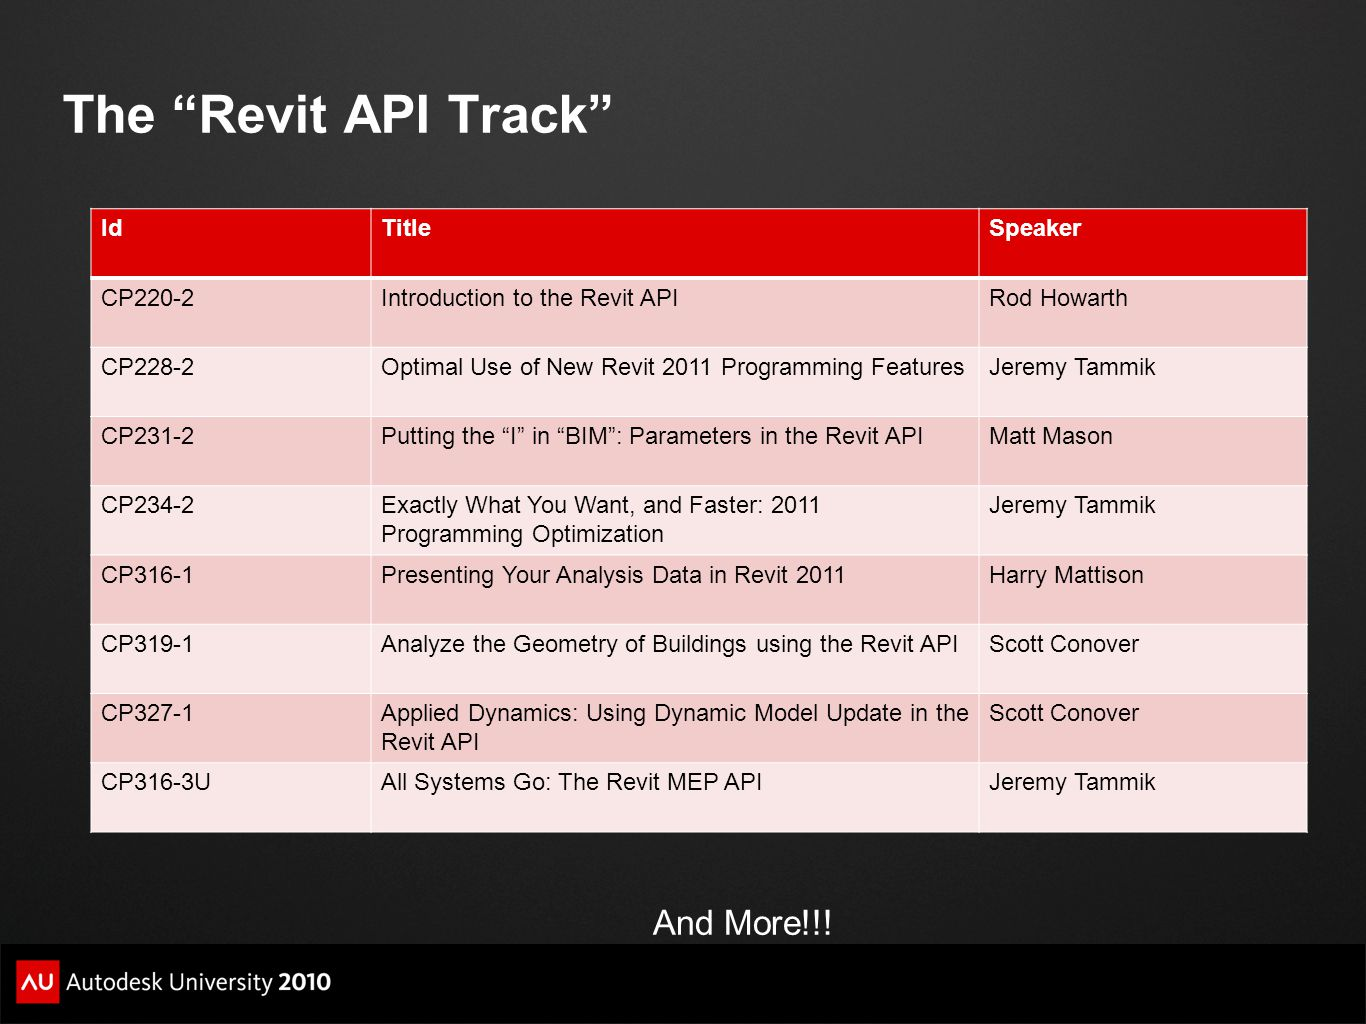 The Revit API Track And More!!! Id Title Speaker CP220-2